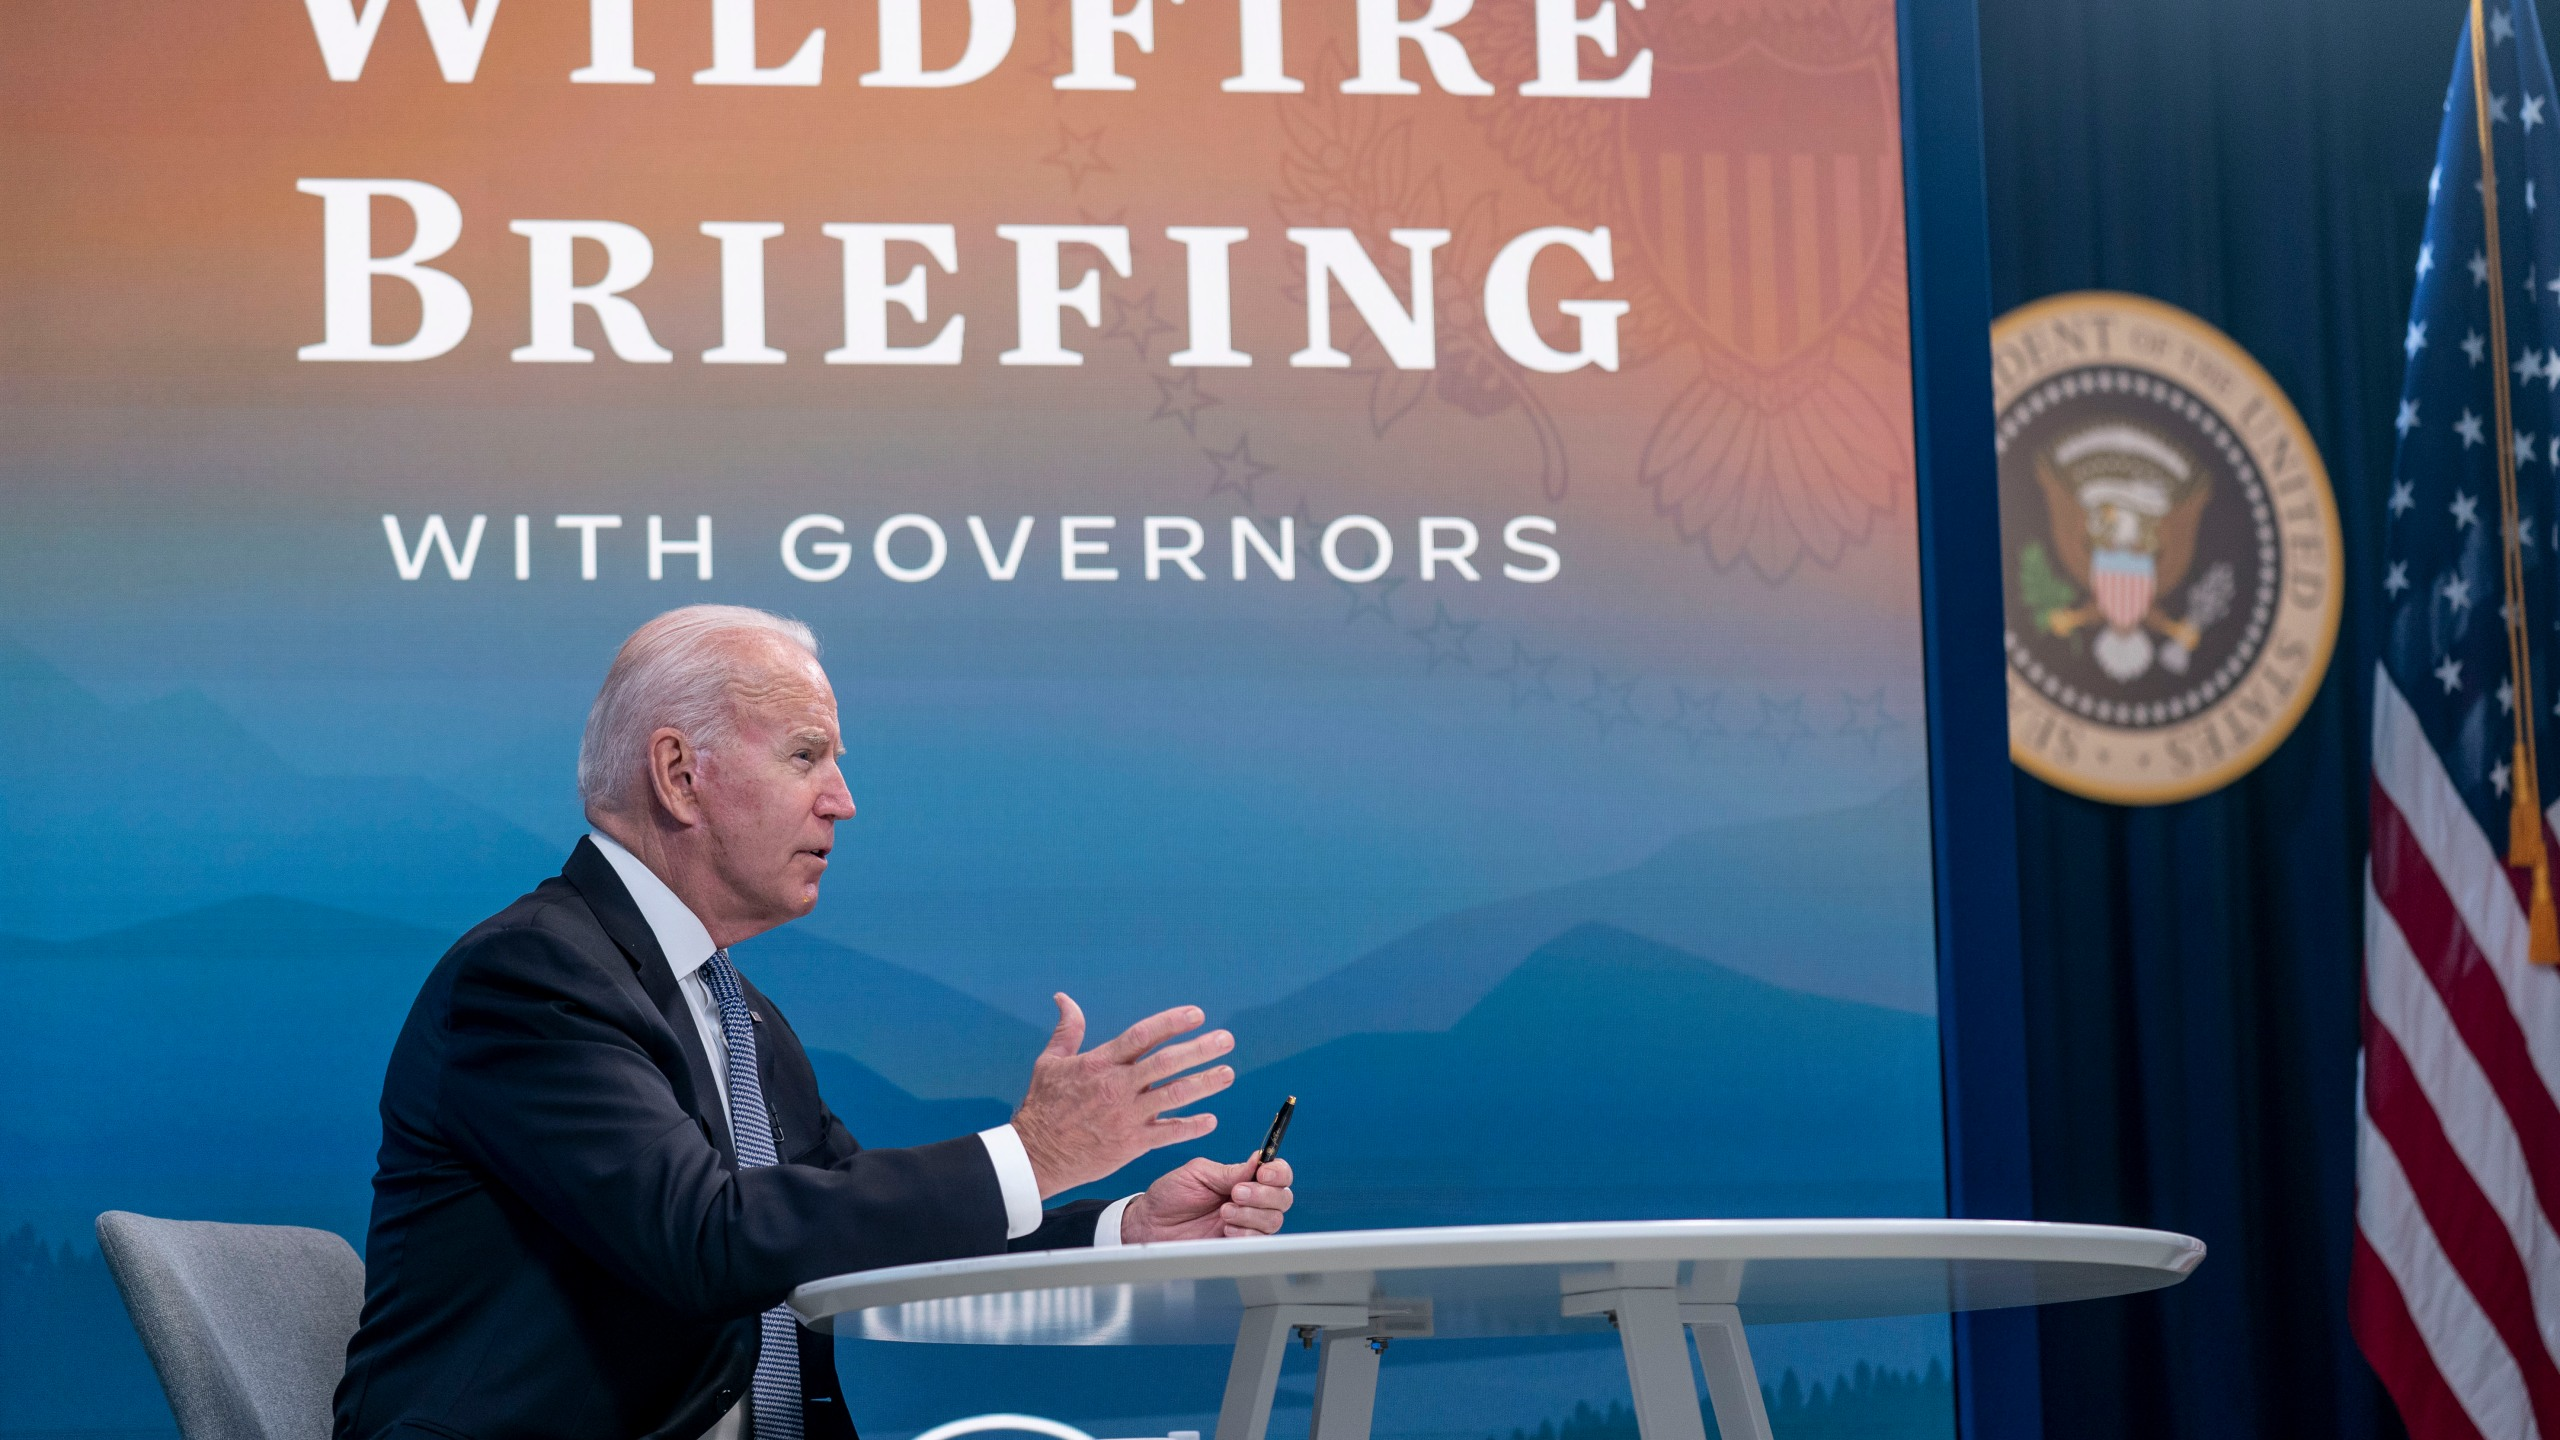 President Joe Biden speaks during a meeting with governors to discuss ongoing efforts to strengthen wildfire prevention, preparedness and response efforts